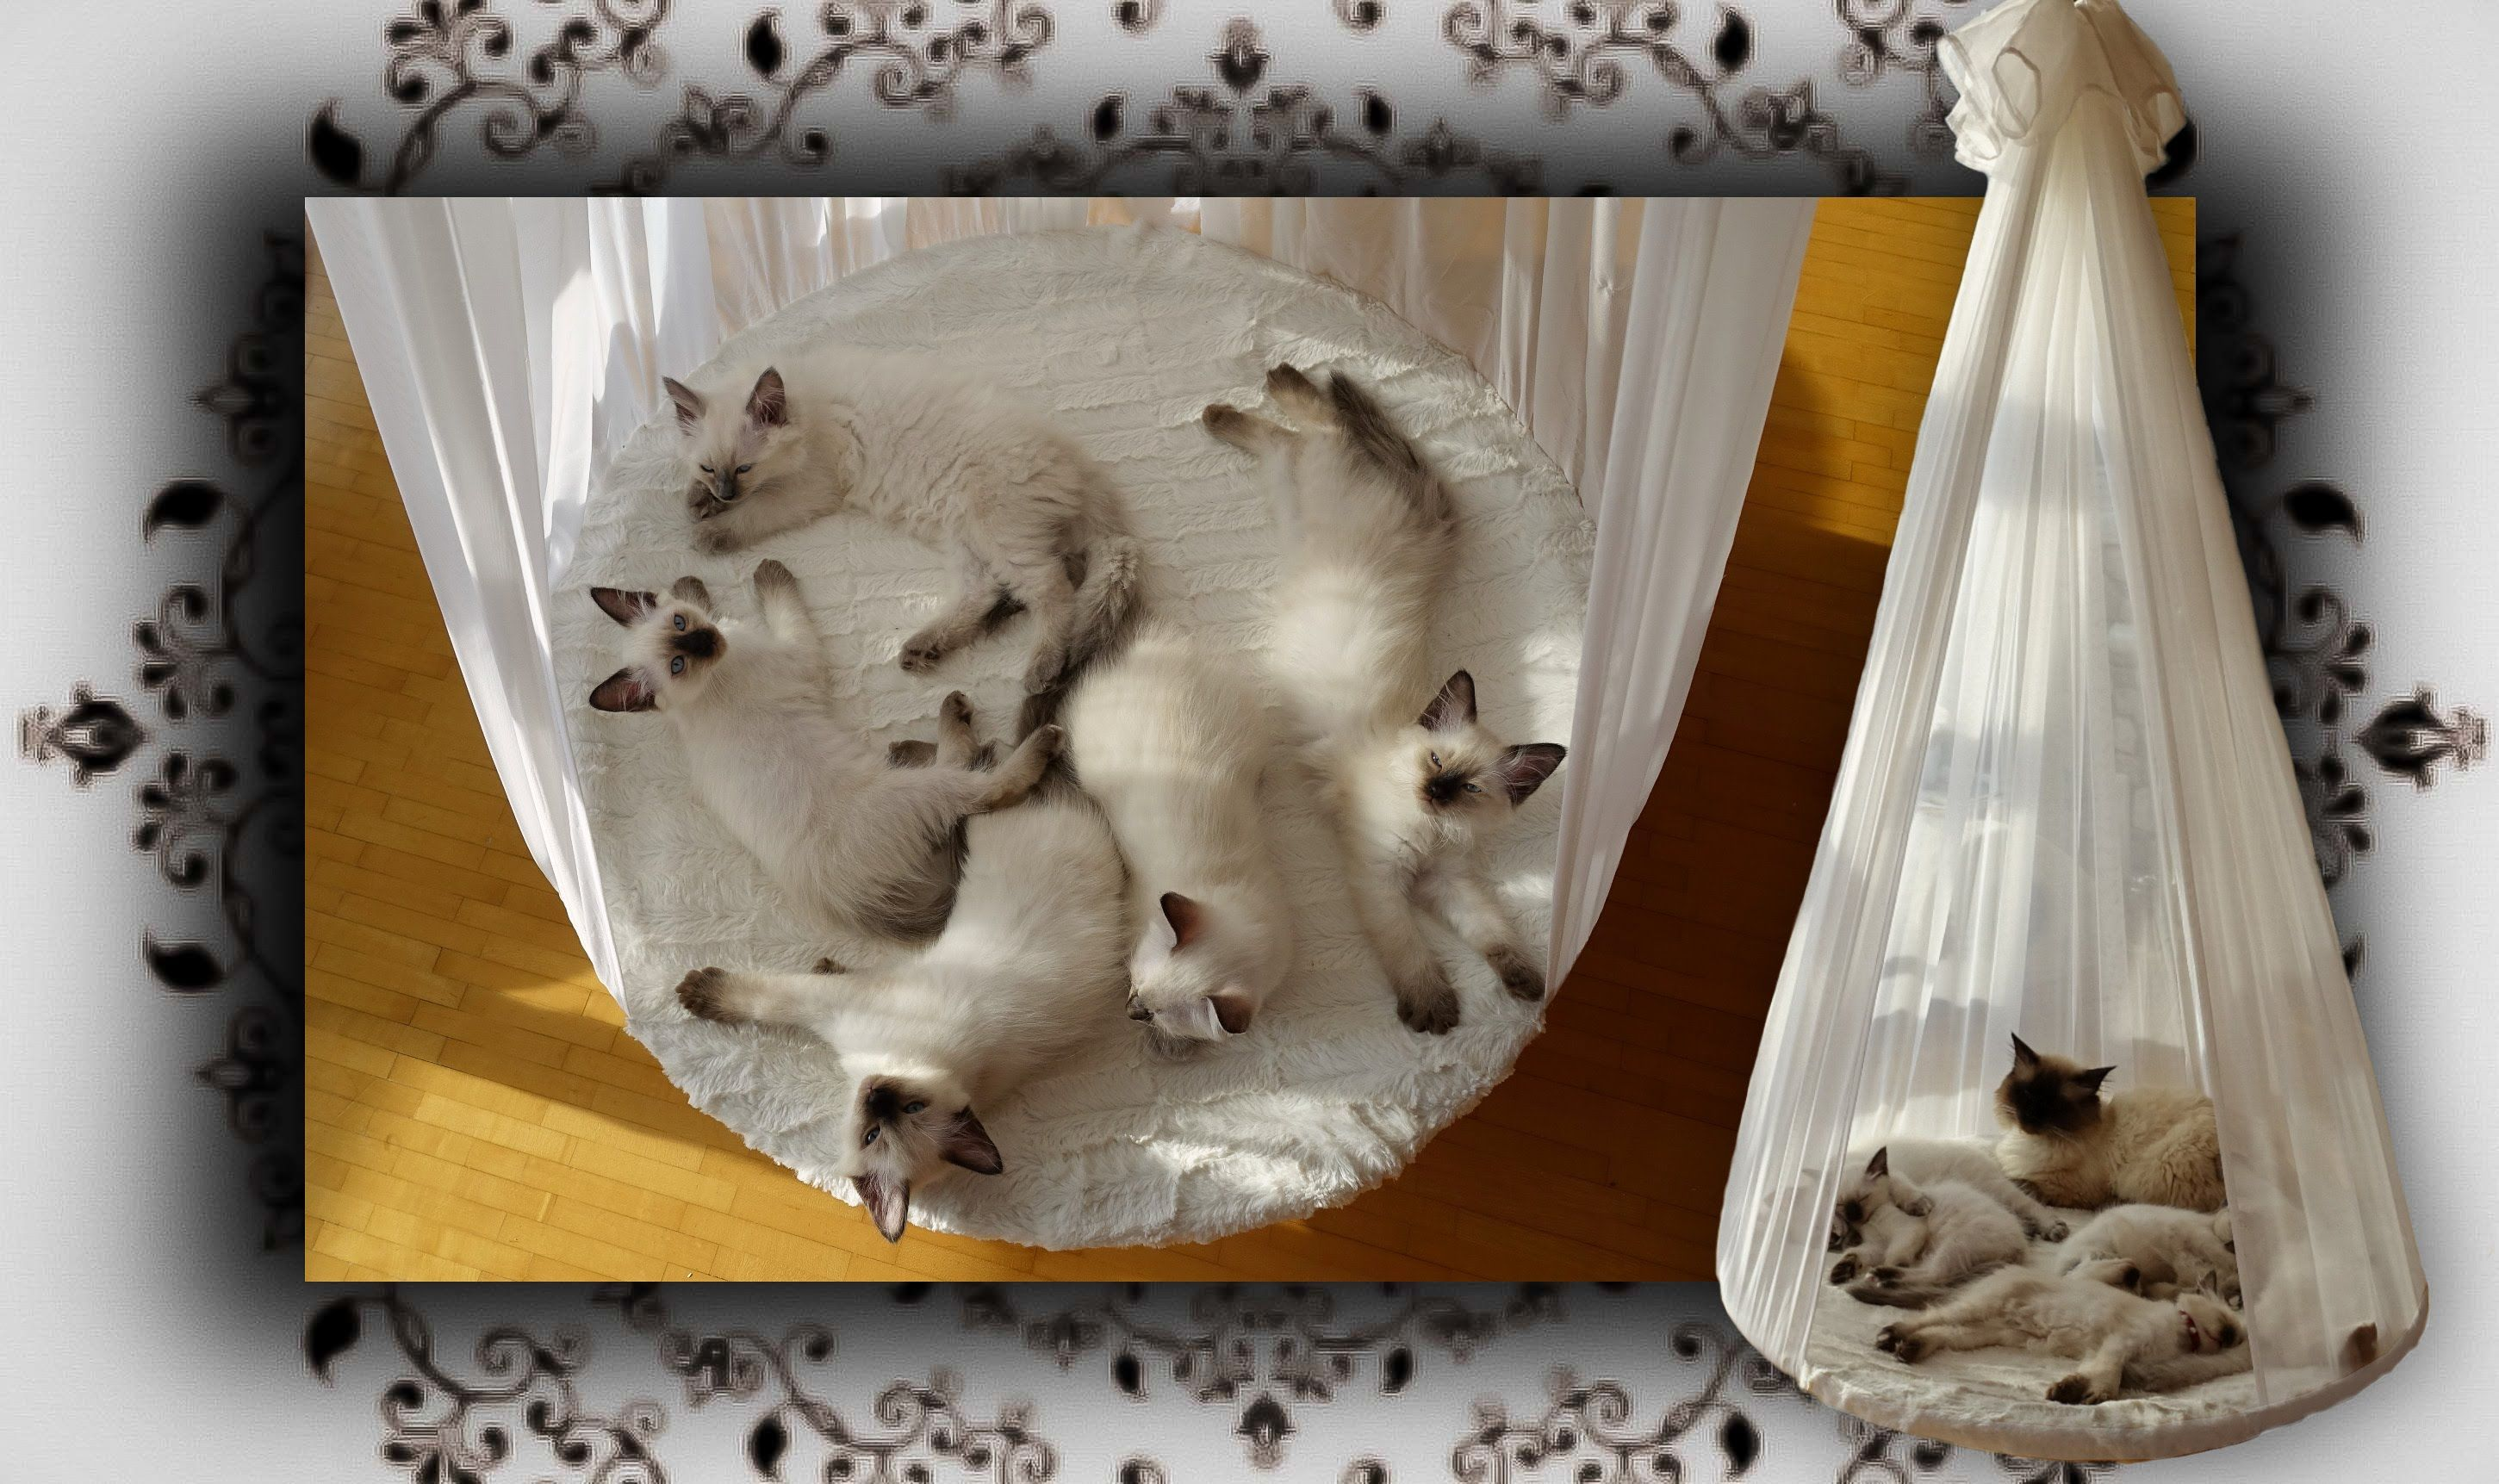 Diy himmelbett f r katzen poster bed for cats katzen - Himmelbett diy ...